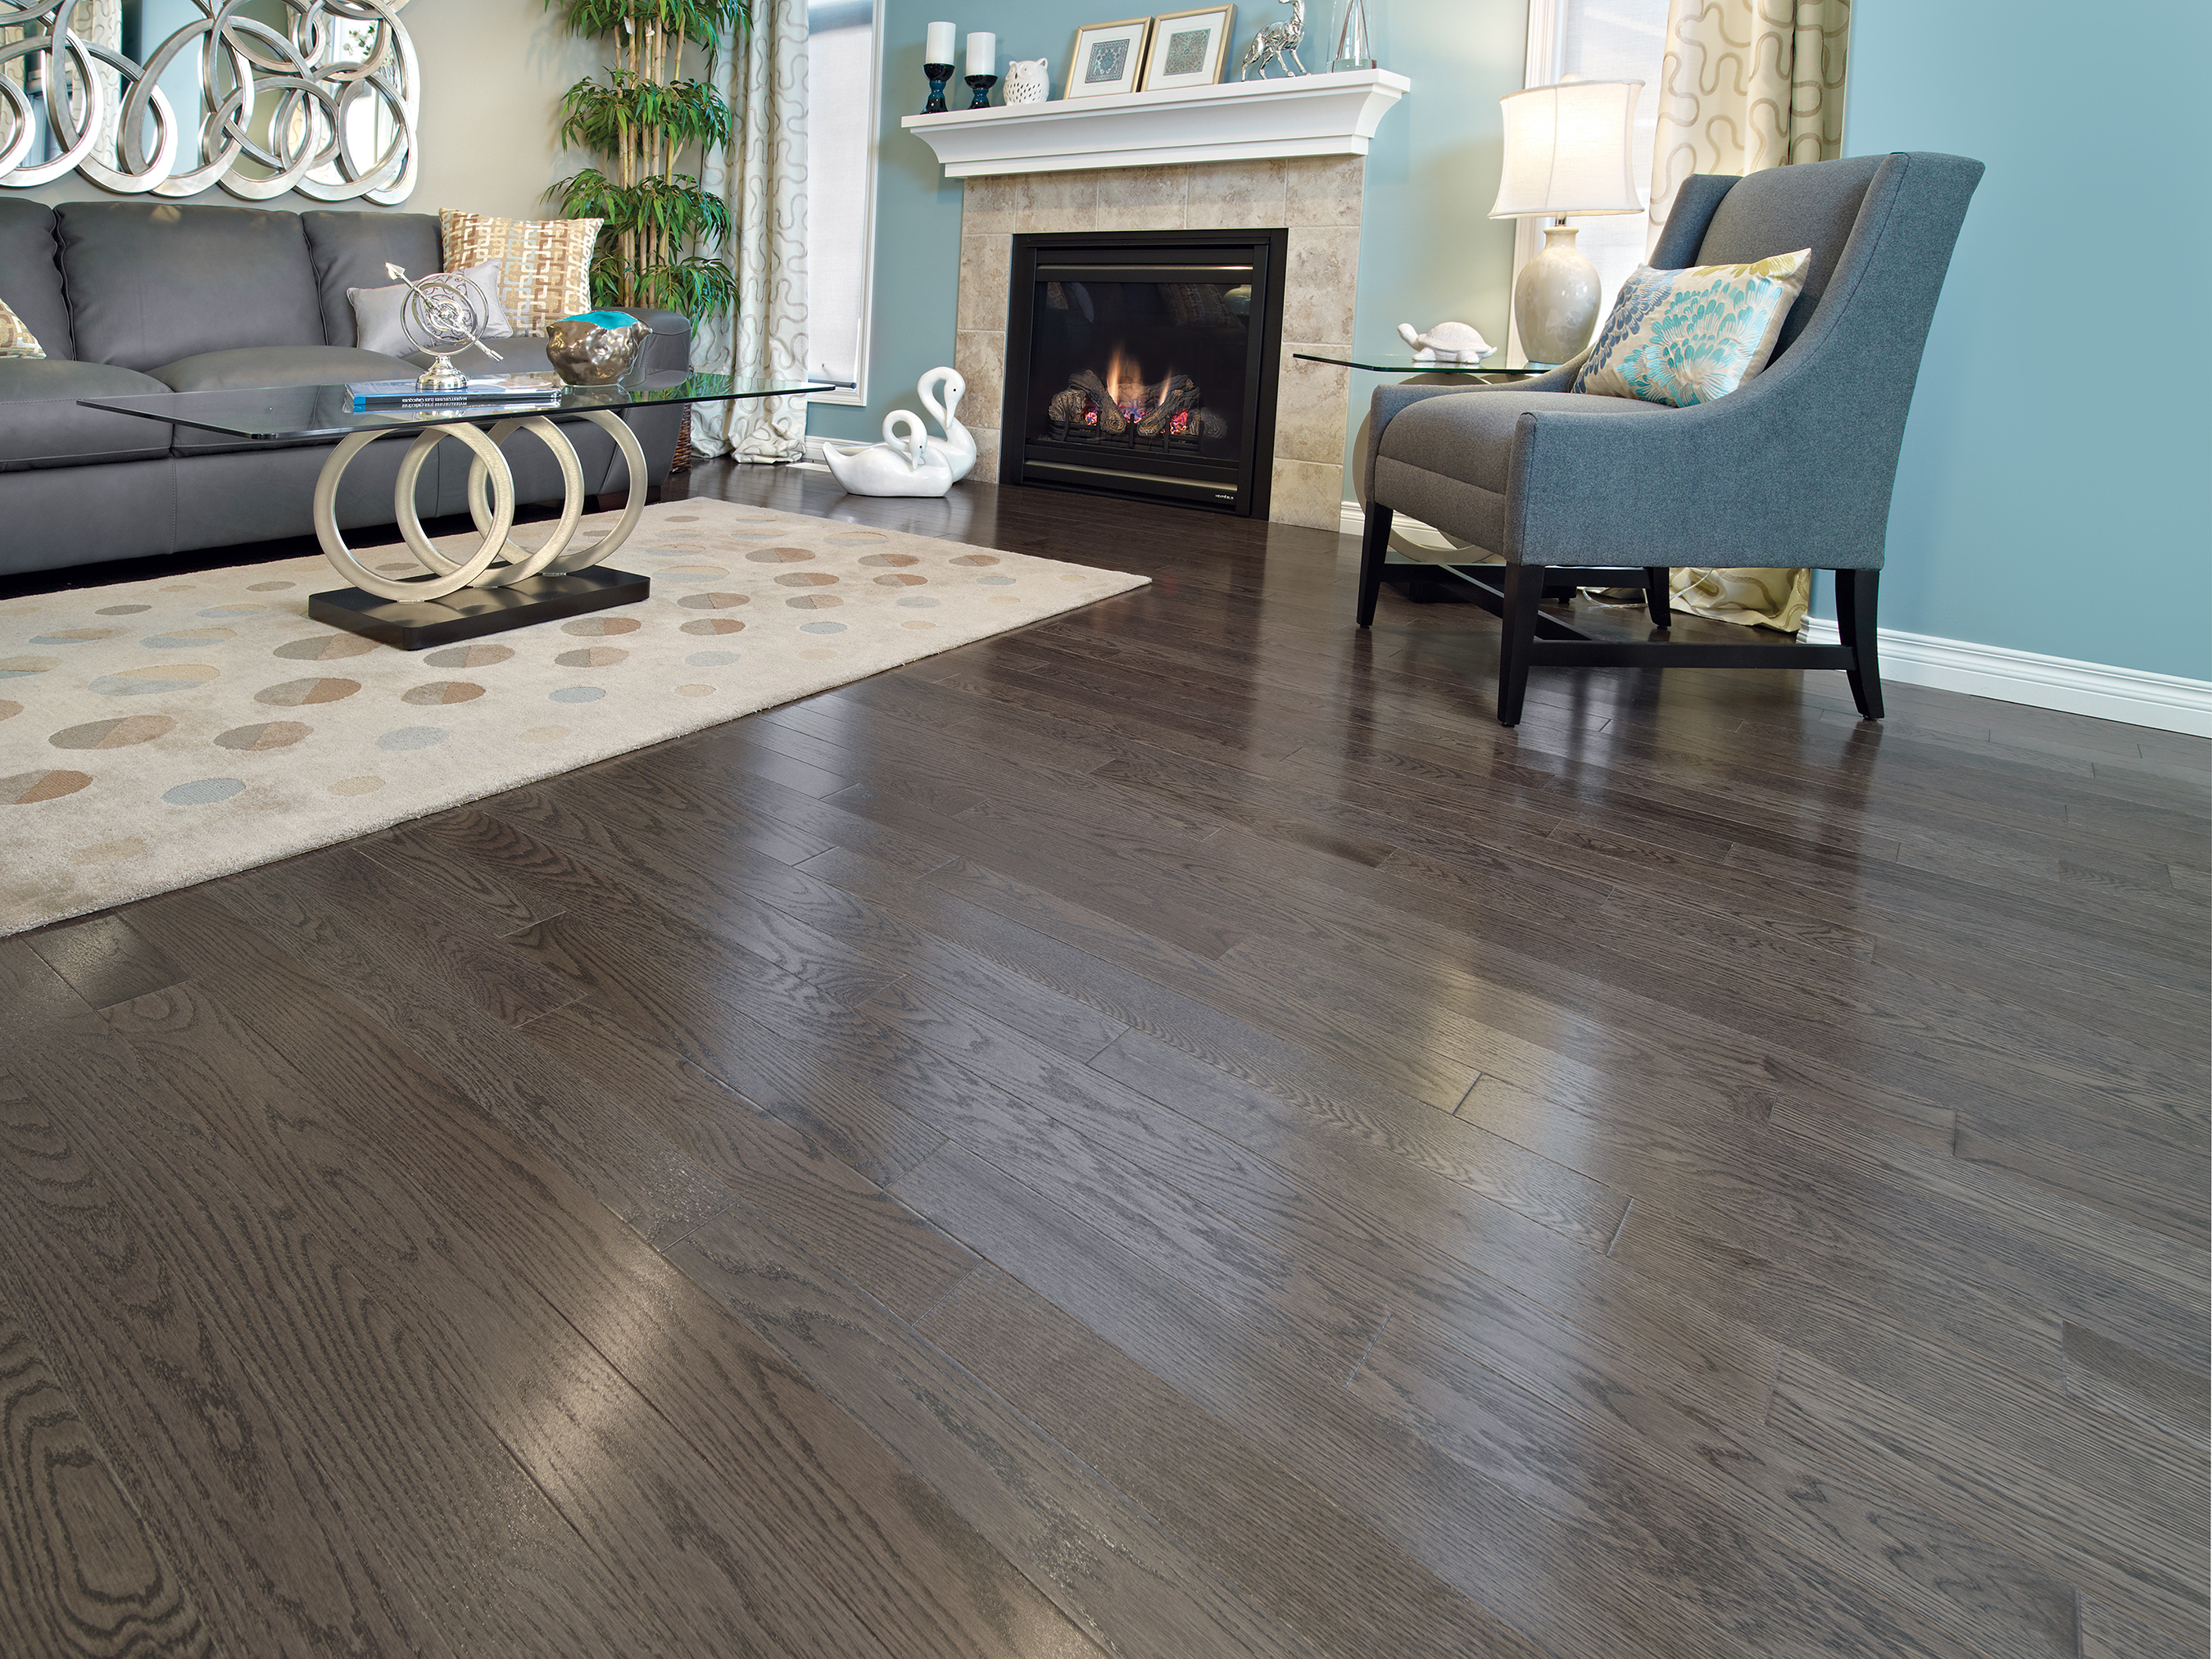 Red oak charcoal mirage hardwood floors call for special for Hardwood floors on sale